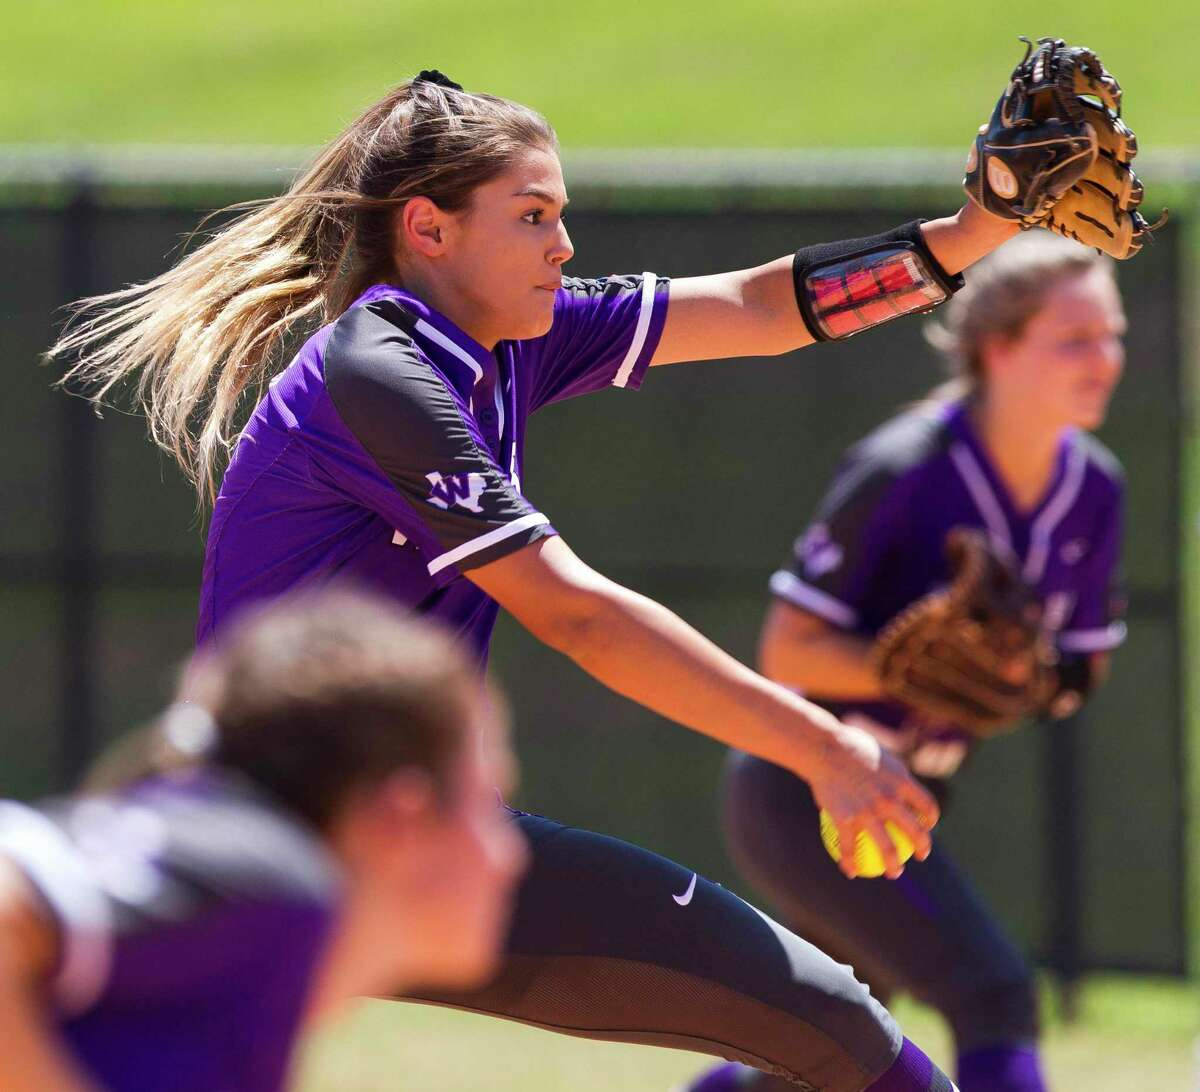 Willis starting pitcher Ashley Vallejo (2), shown here last season, struck out 23 New Caney batters in a 12 inning game on Tuesday.